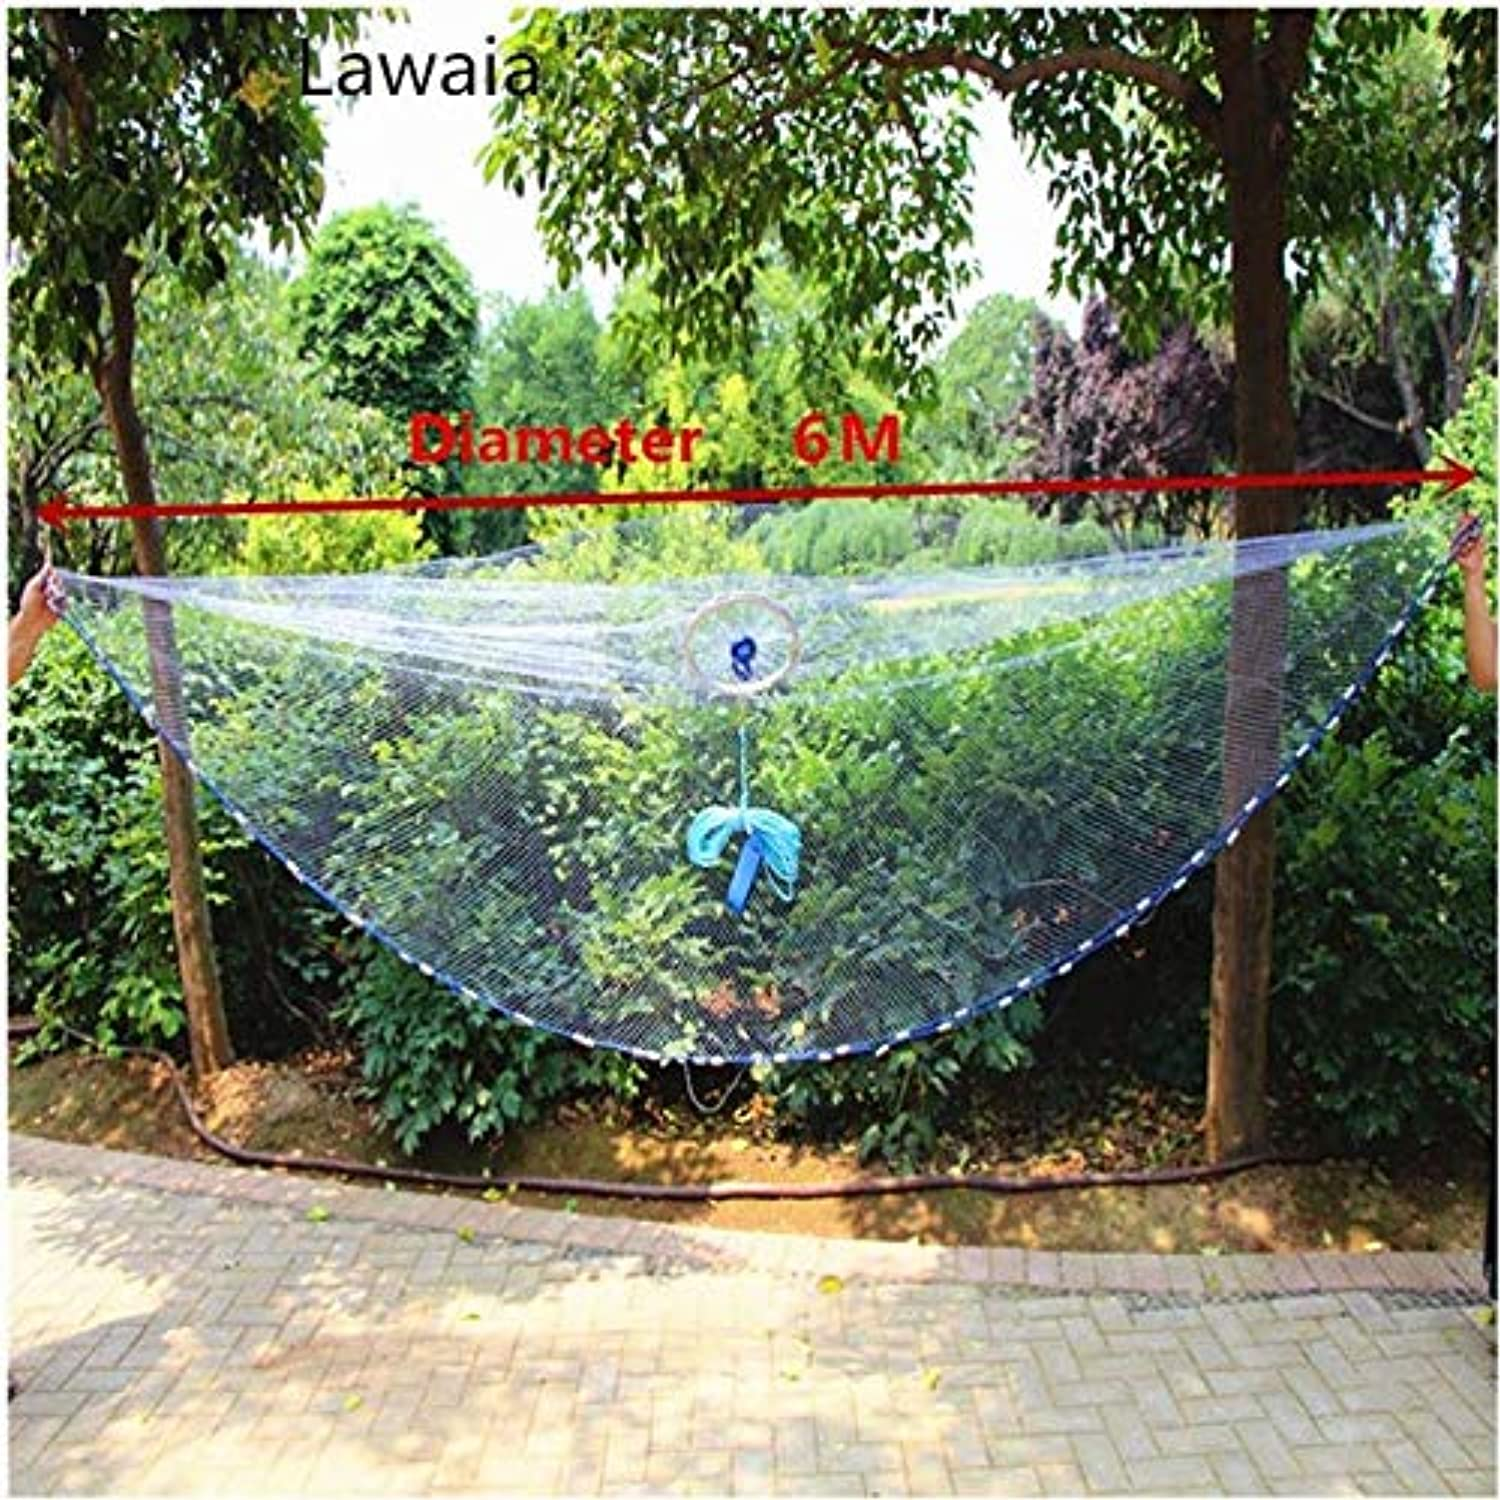 Lawaia Fishingnet with Lead Pendant Fishing Network Lead Cast Net with Ring American Style Cast Net Throwing Tool   Diameter 600cm